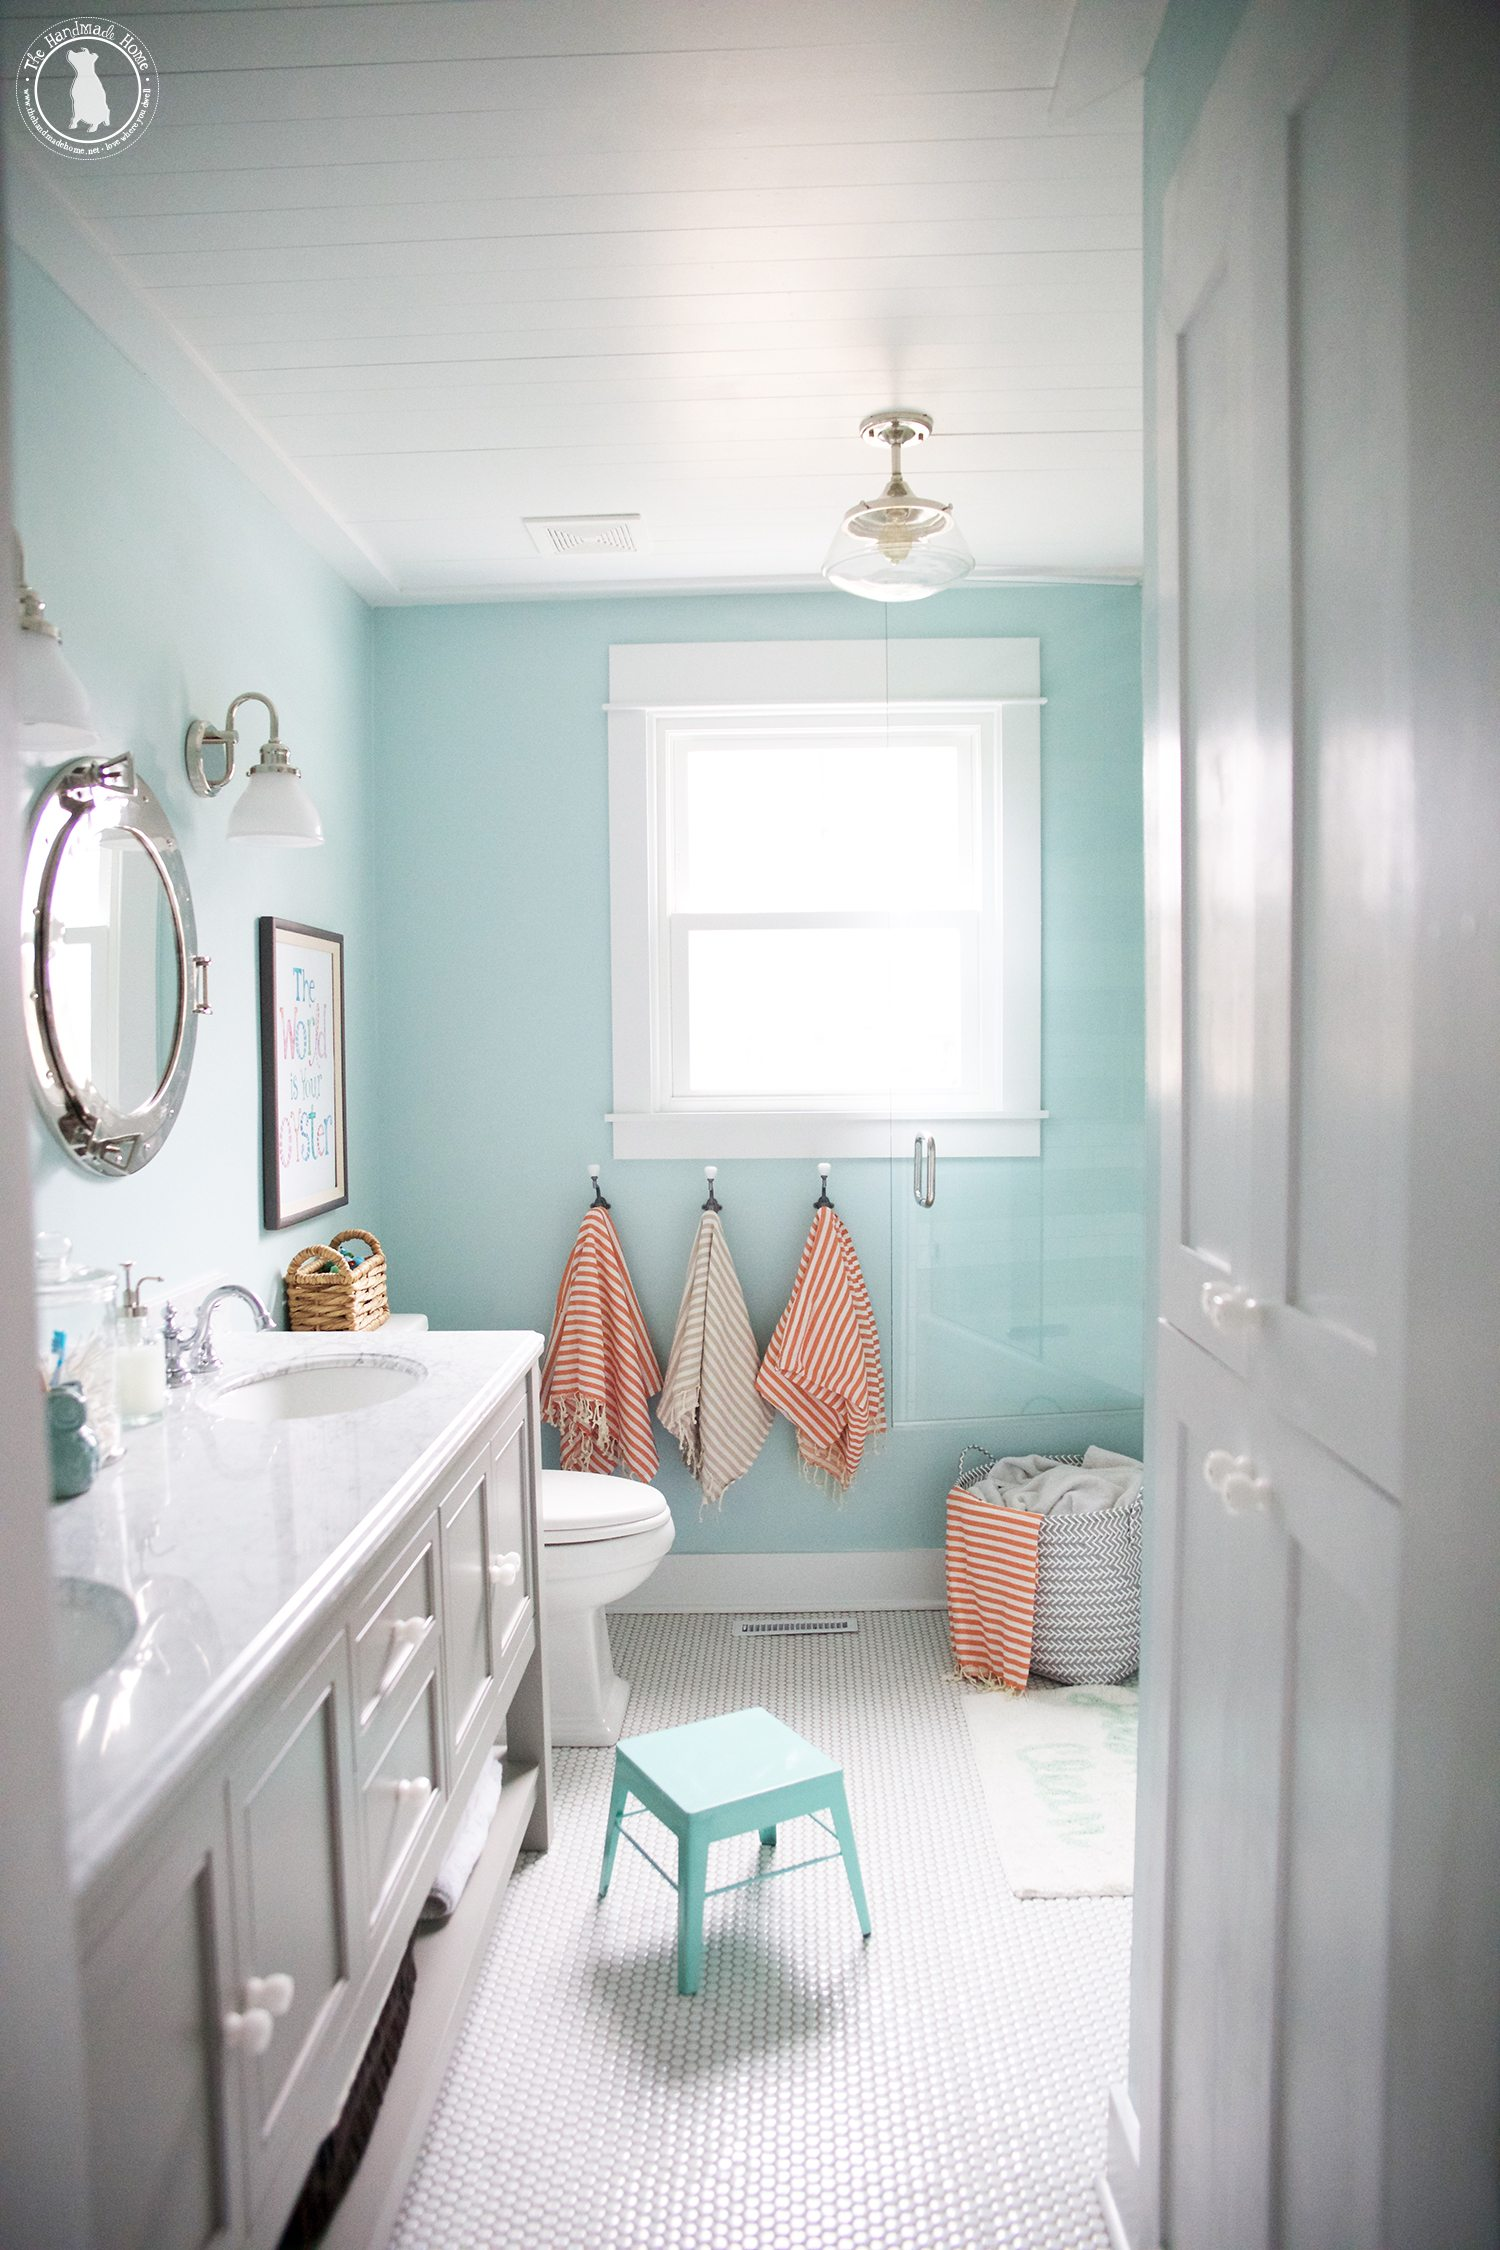 Useful Ideas For Decorating A Kids Bathroom – goodworksfurniture